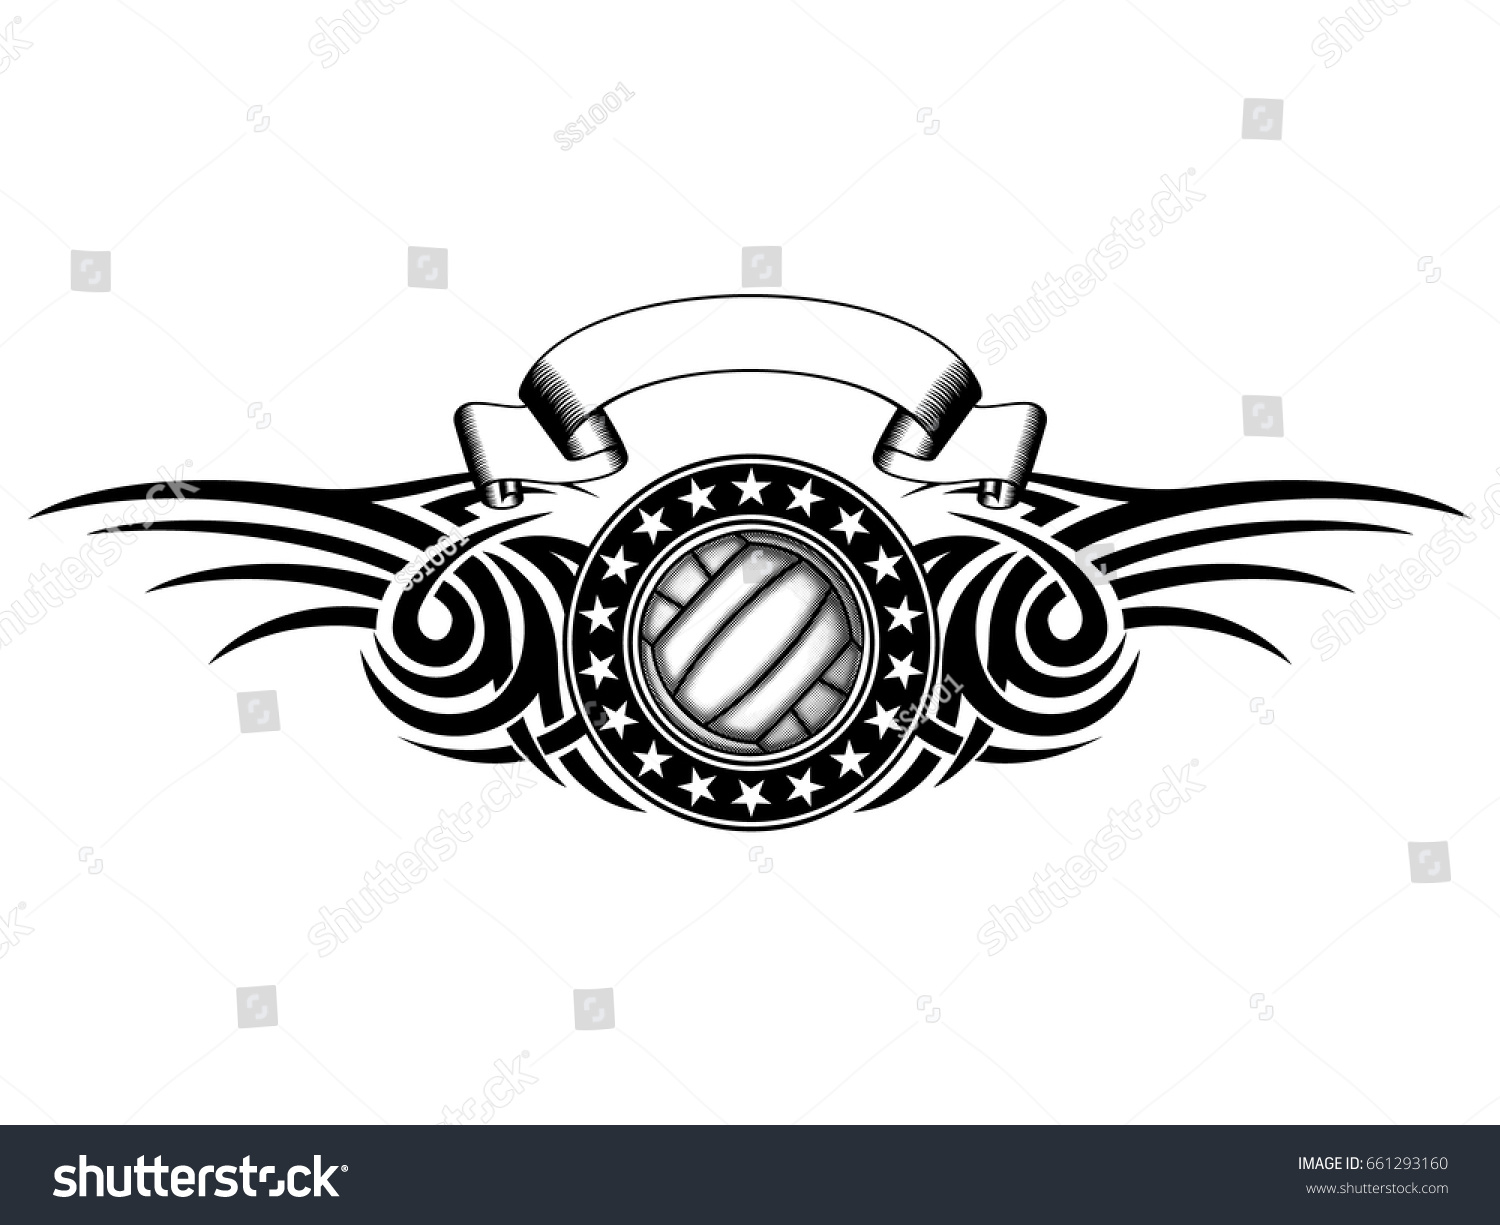 Volleyball Abstract Stock Photos Volleyball Abstract: Abstract Vector Illustration Black White Volleyball Stock